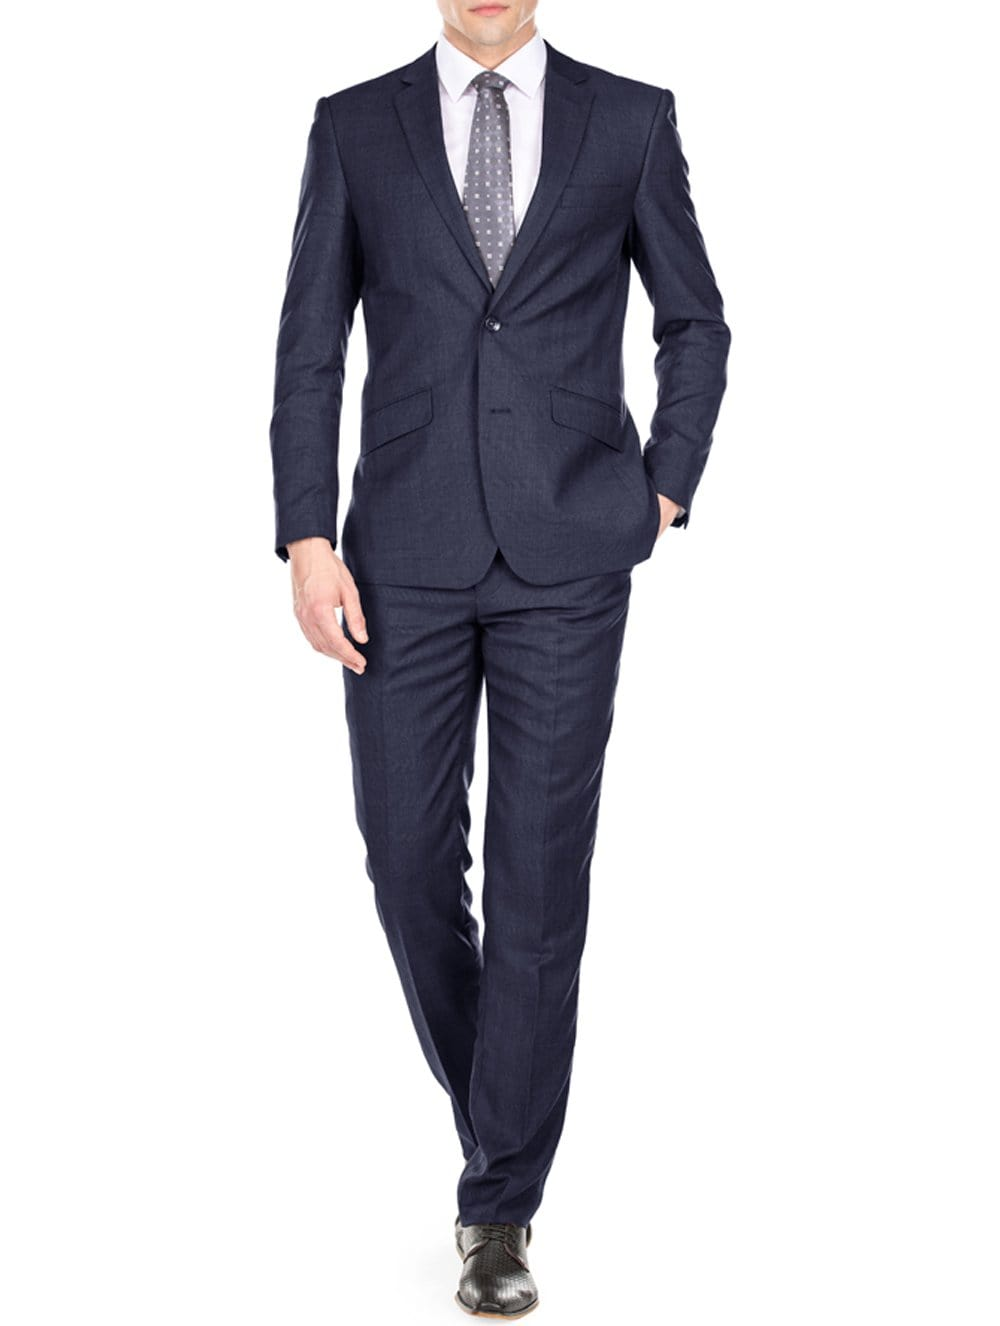 DAILY HAUTE Men's Suits NAVY / 36Rx30W Gino Vitale Light Glen Check Men's Slim Fit 2PC Suit